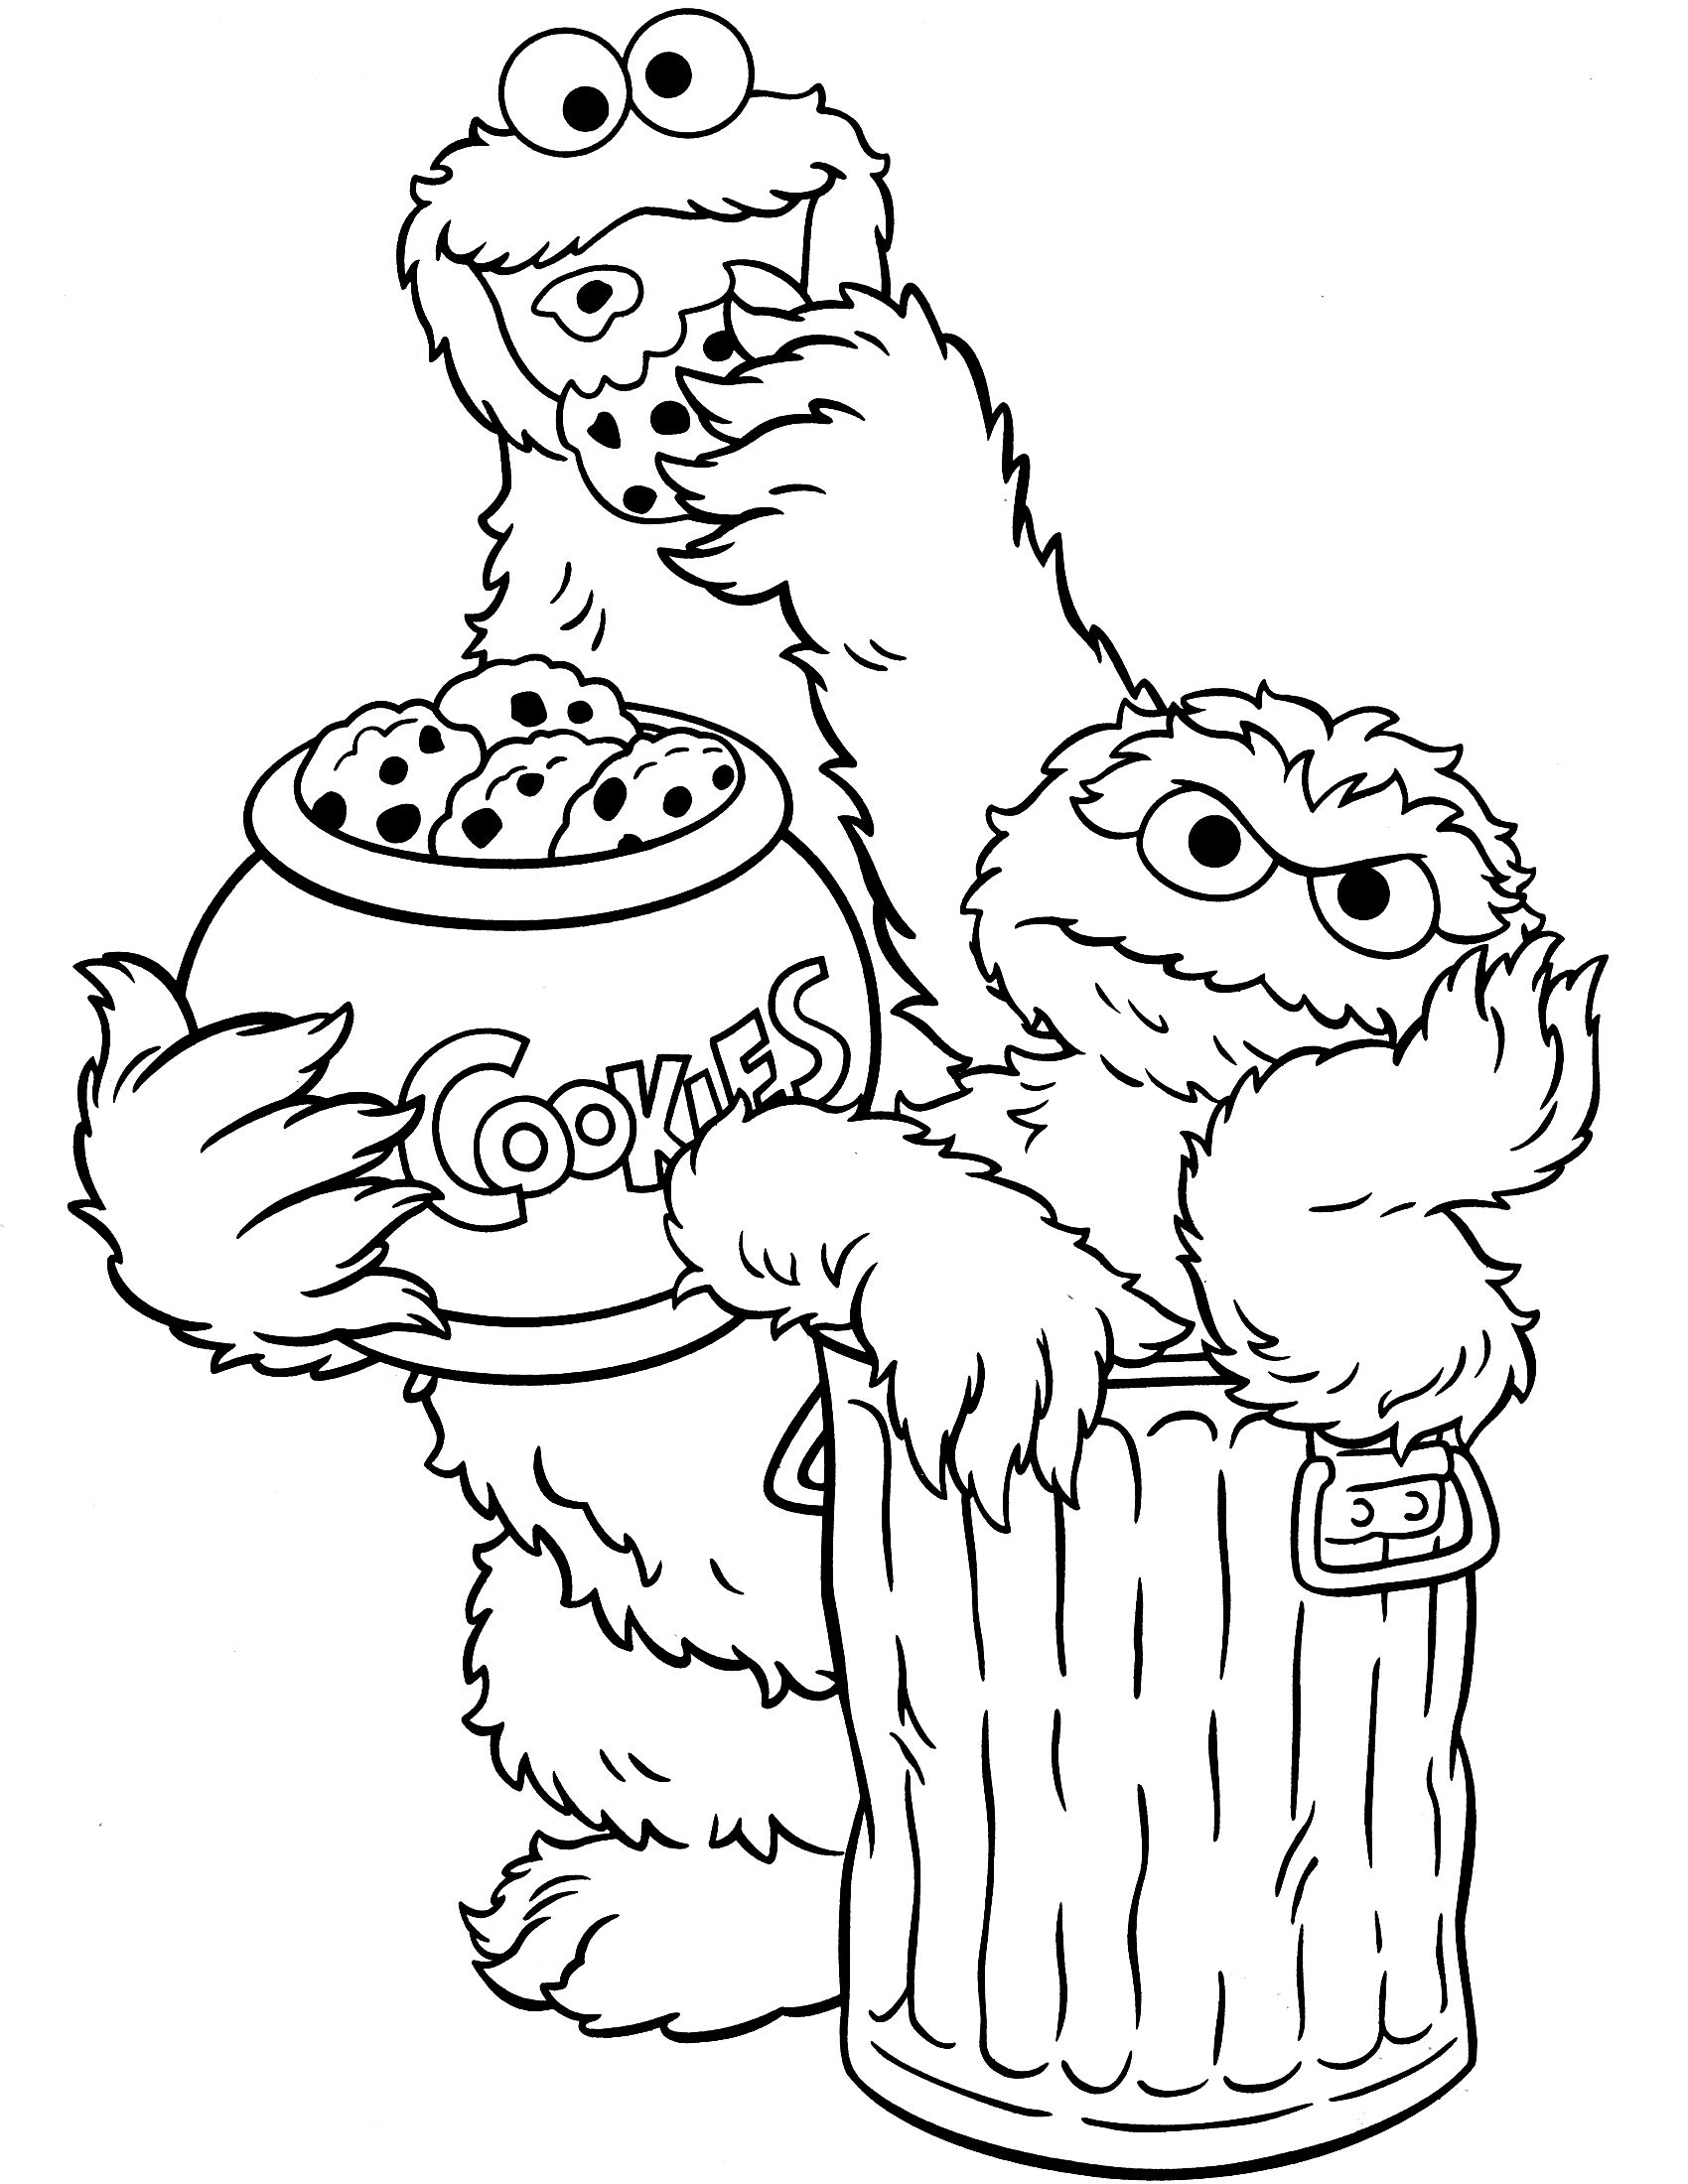 Sesame Street Coloring Pages Free Printable Coloring Page.